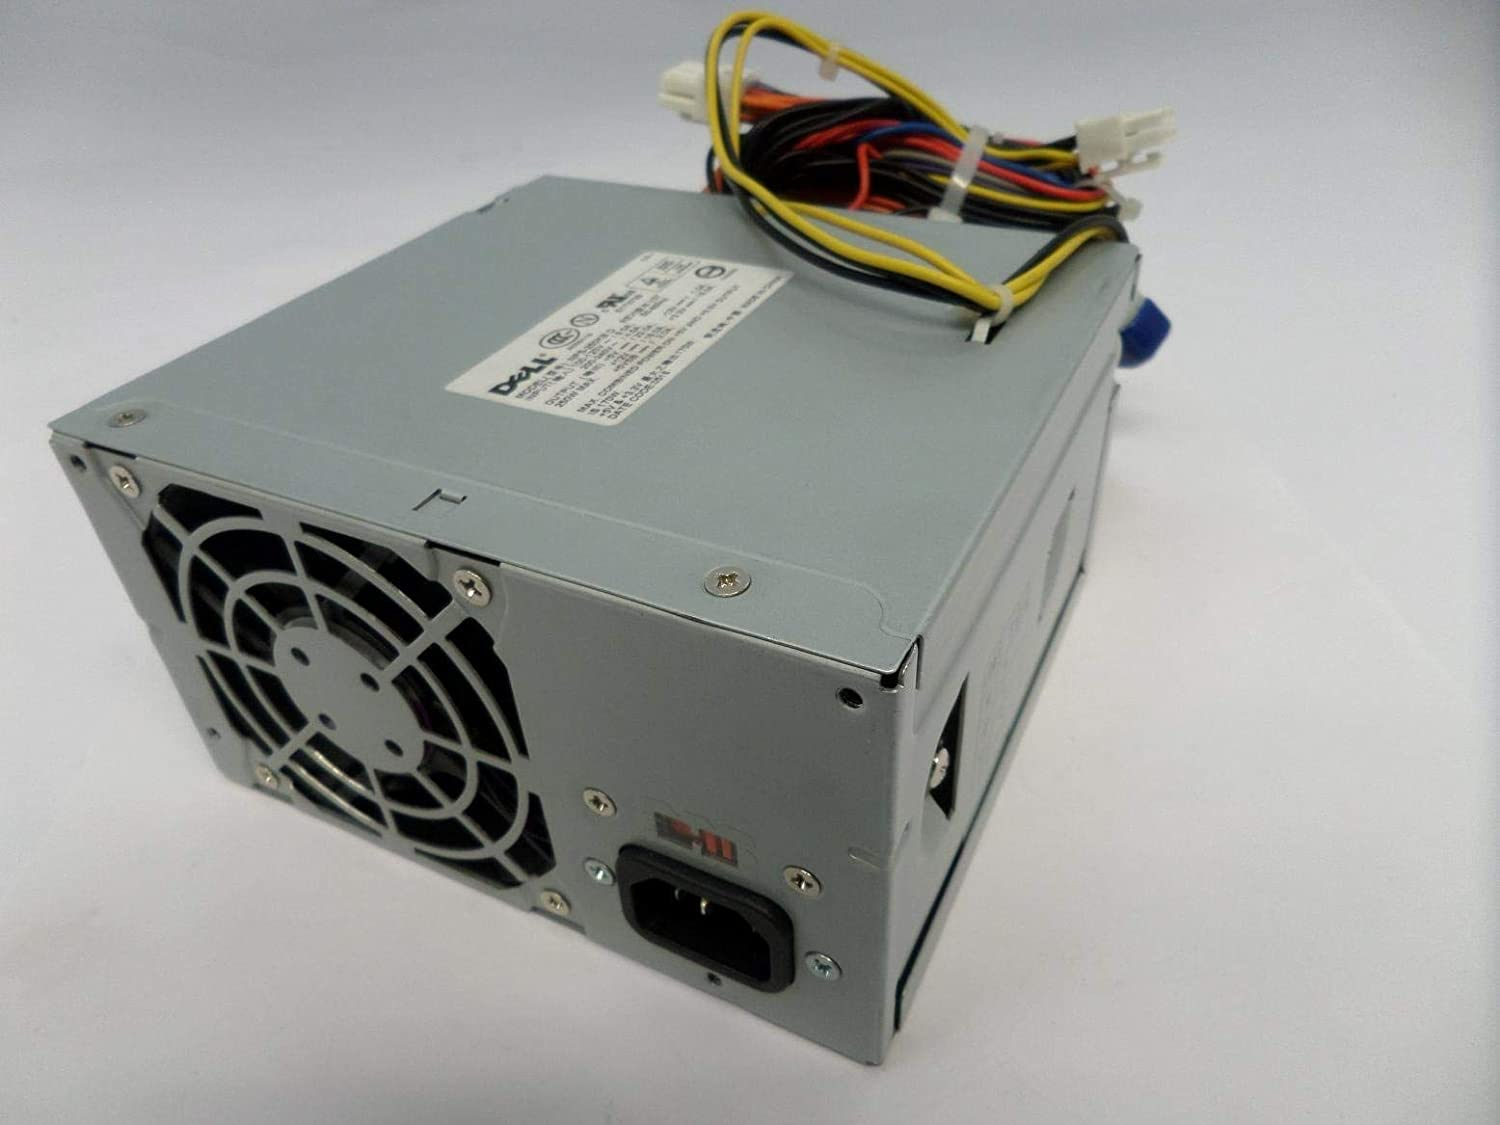 DELL Part # H2678, Renewed